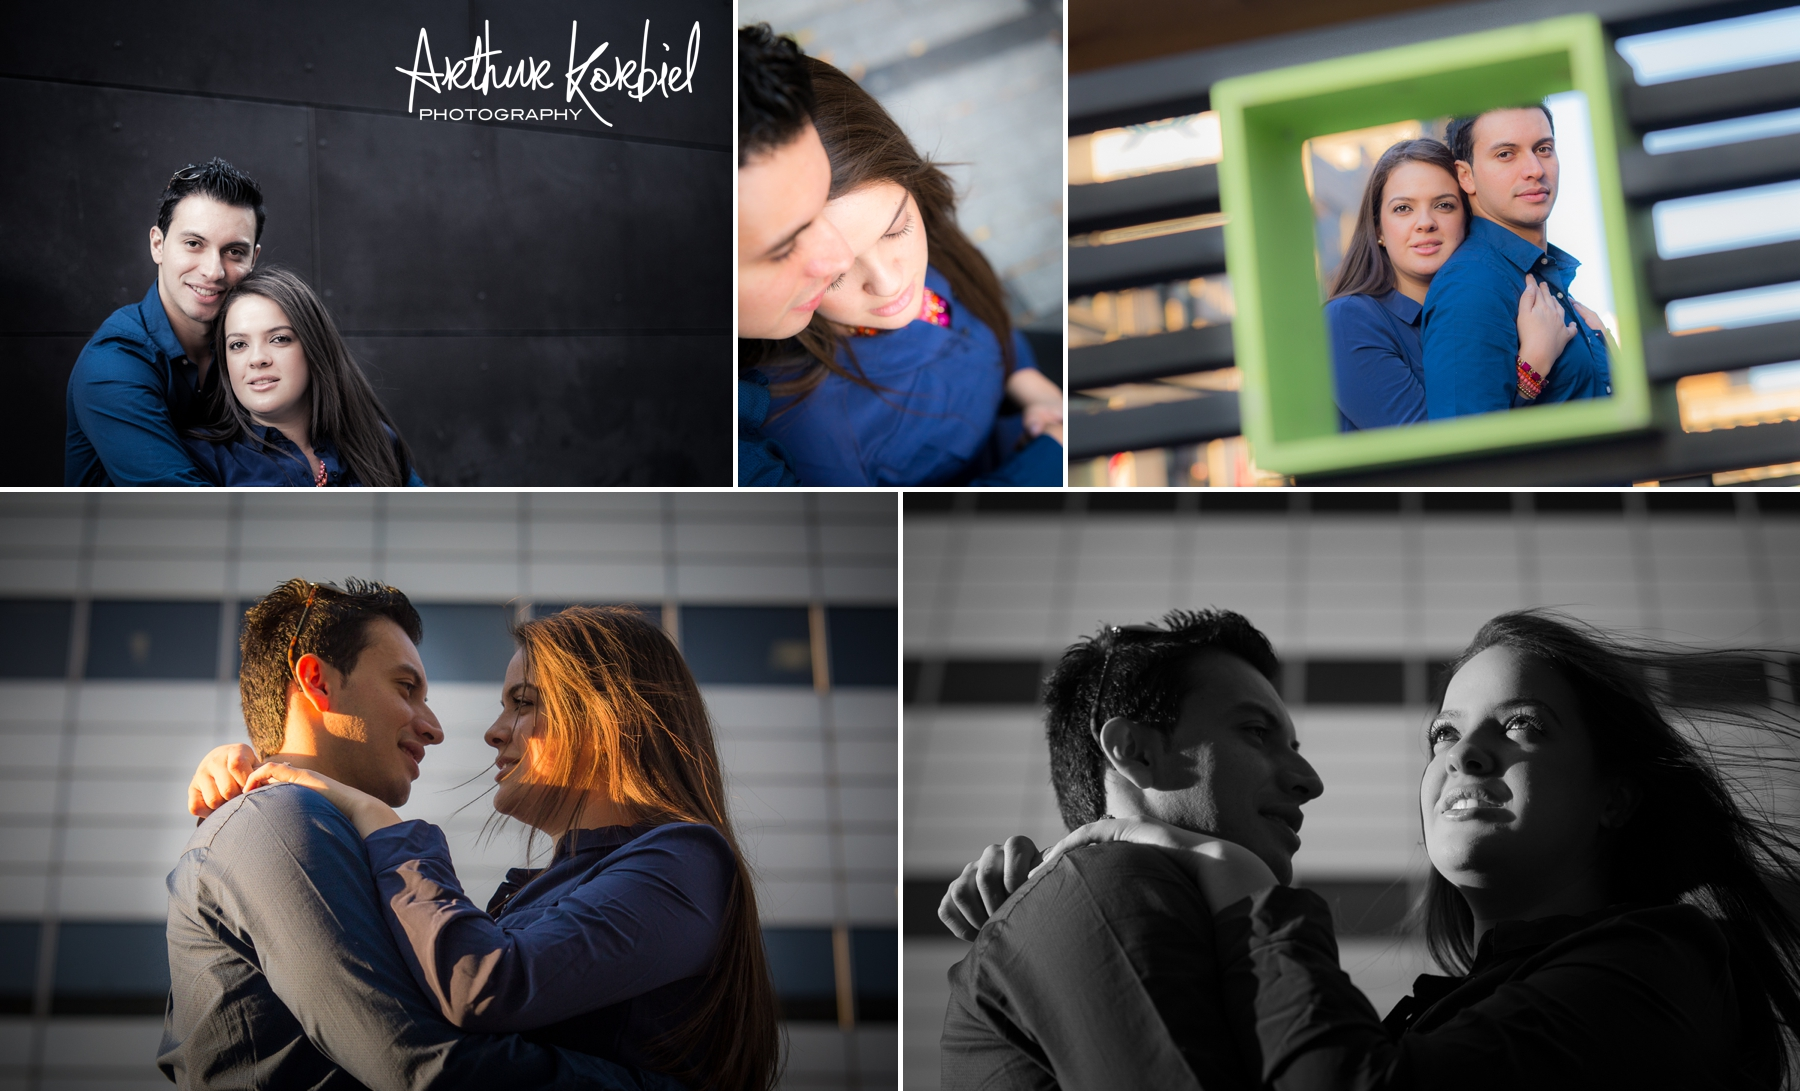 Arthur Korbiel Photography - London Engagement Photographer - Downtown London - Maria & Jose_003.jpg